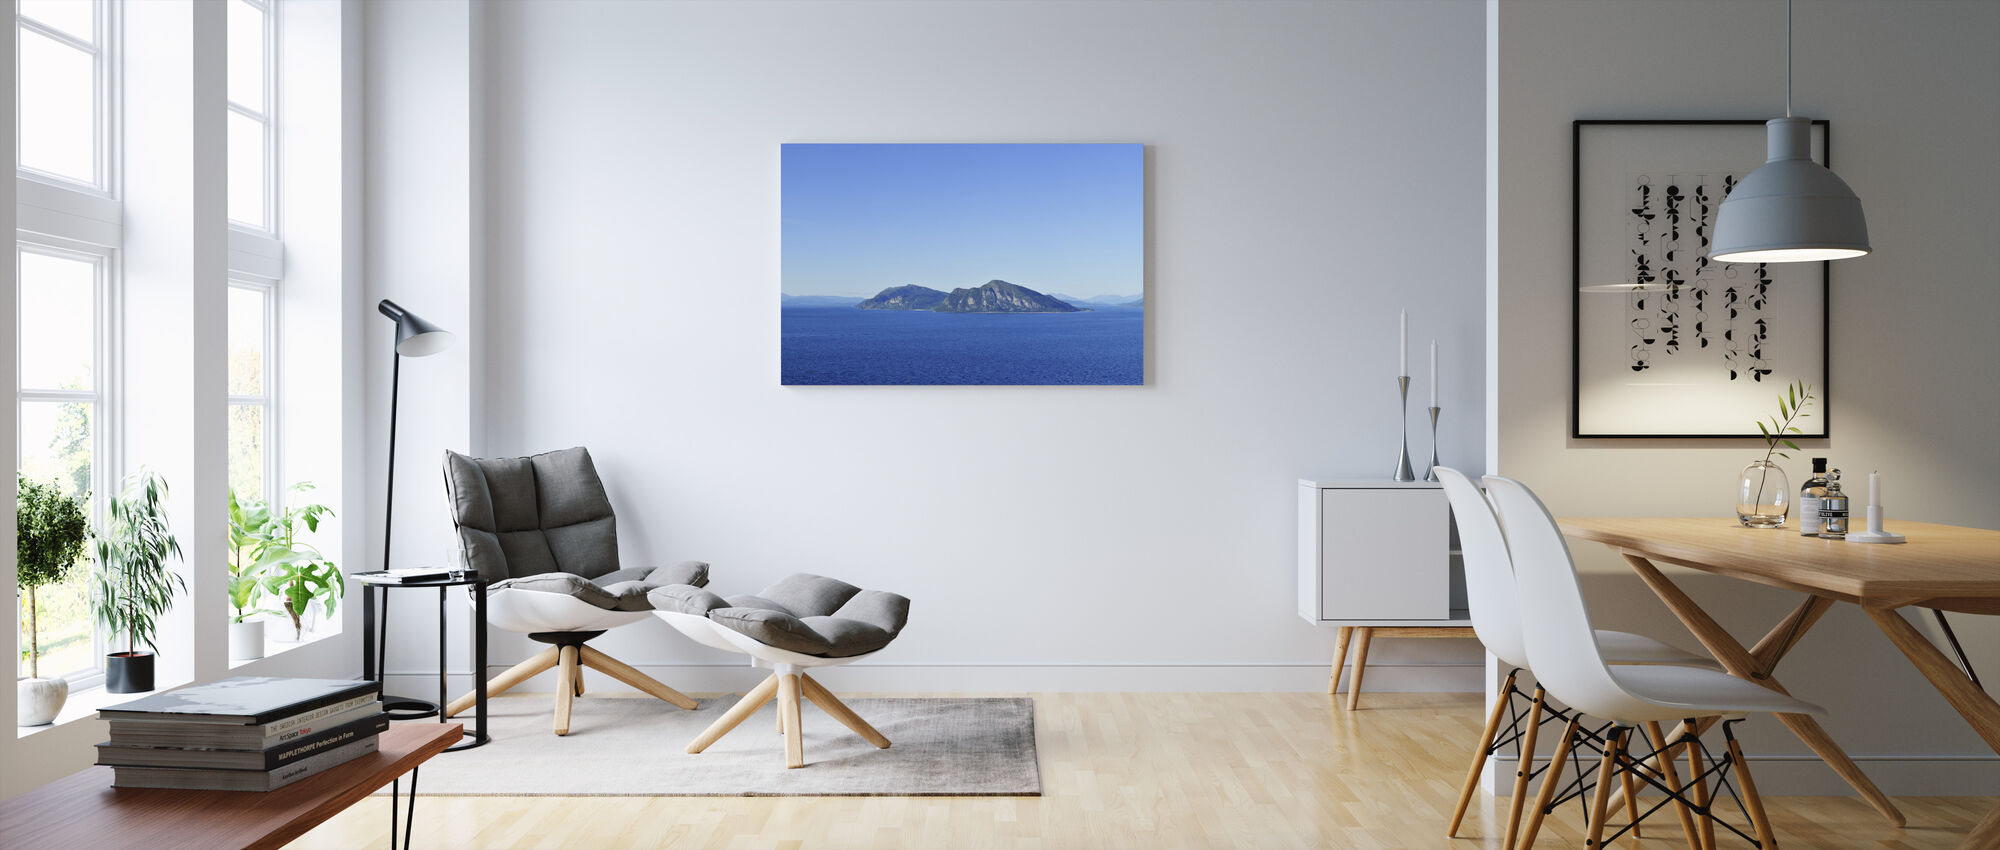 Vågsfjorden Panorama, Norway - Canvas print - Living Room